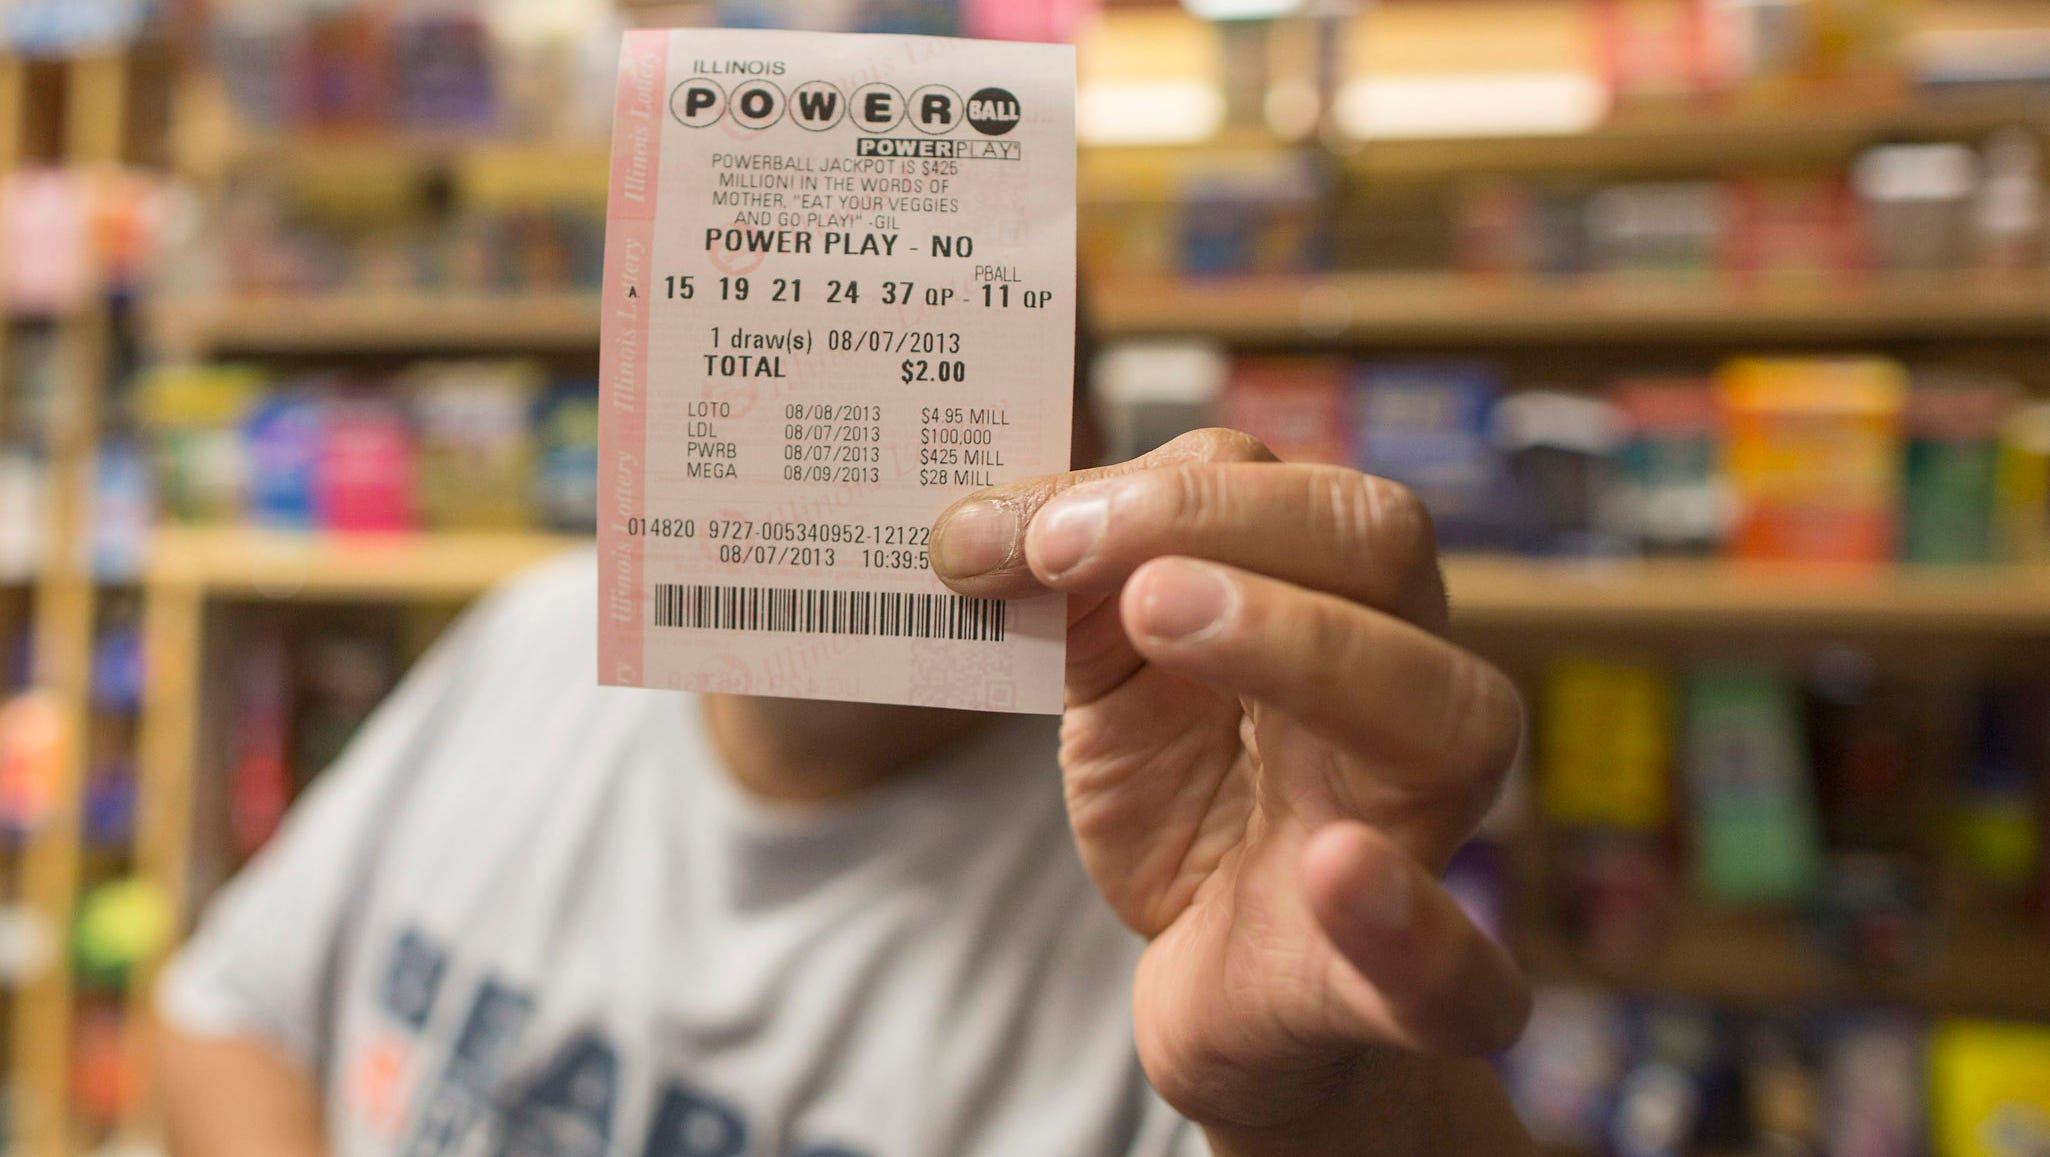 A man holds up his Powerball lottery ticket at a convenience store on Aug. 7 in Chicago. The lump-sum payout, after taxes, for the estimated $425 million jackpot is $244.7 million.